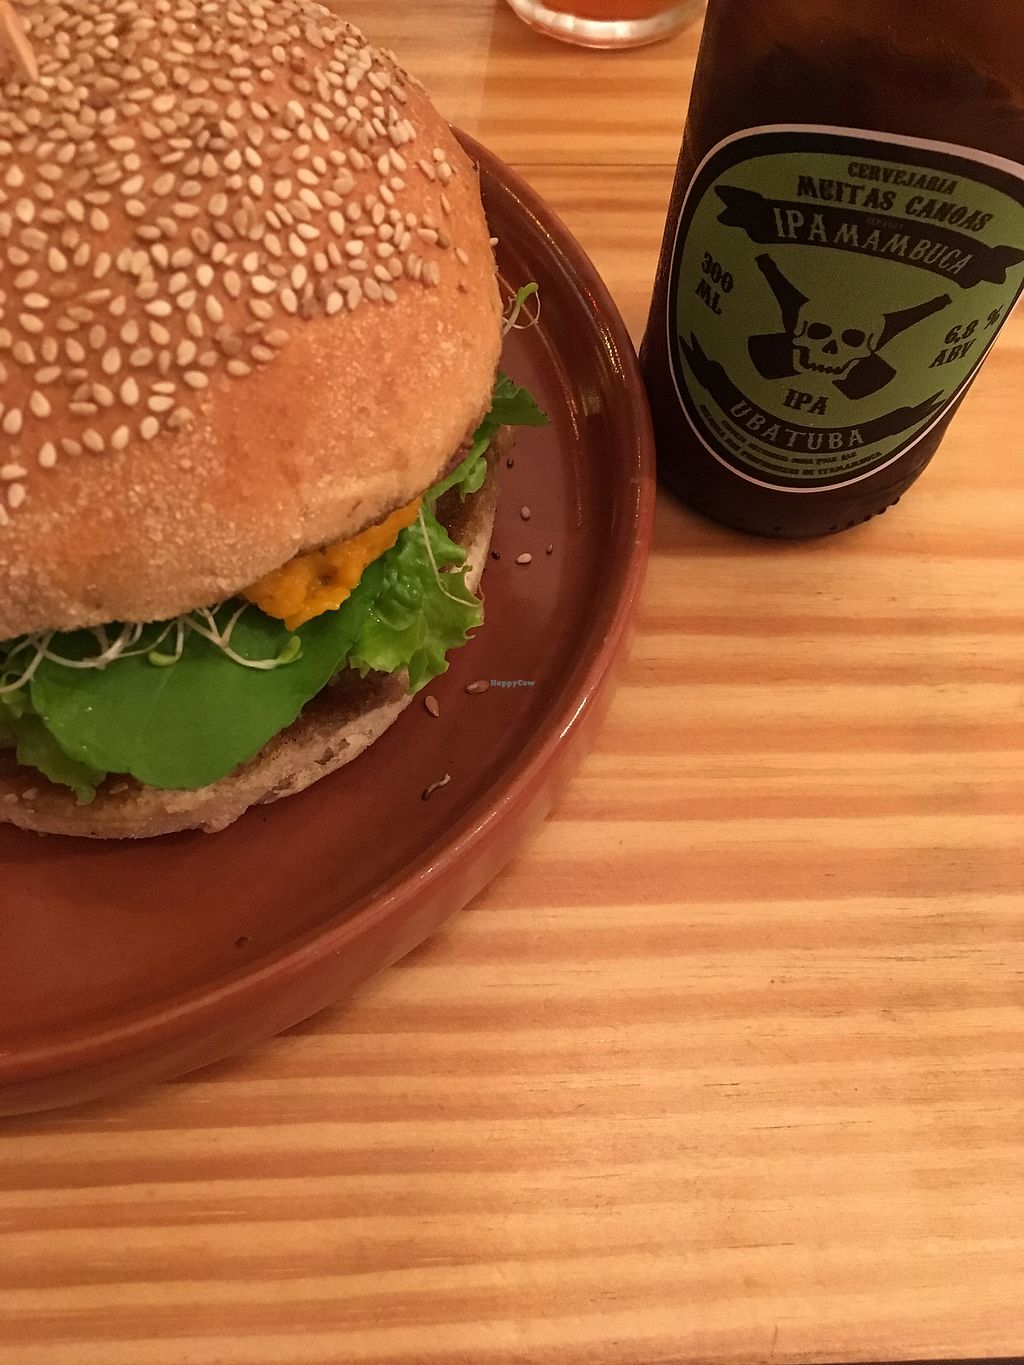 """Photo of Mangarito  by <a href=""""/members/profile/MarcusDerencius"""">MarcusDerencius</a> <br/>Vegan burguer <br/> September 15, 2017  - <a href='/contact/abuse/image/91425/304575'>Report</a>"""